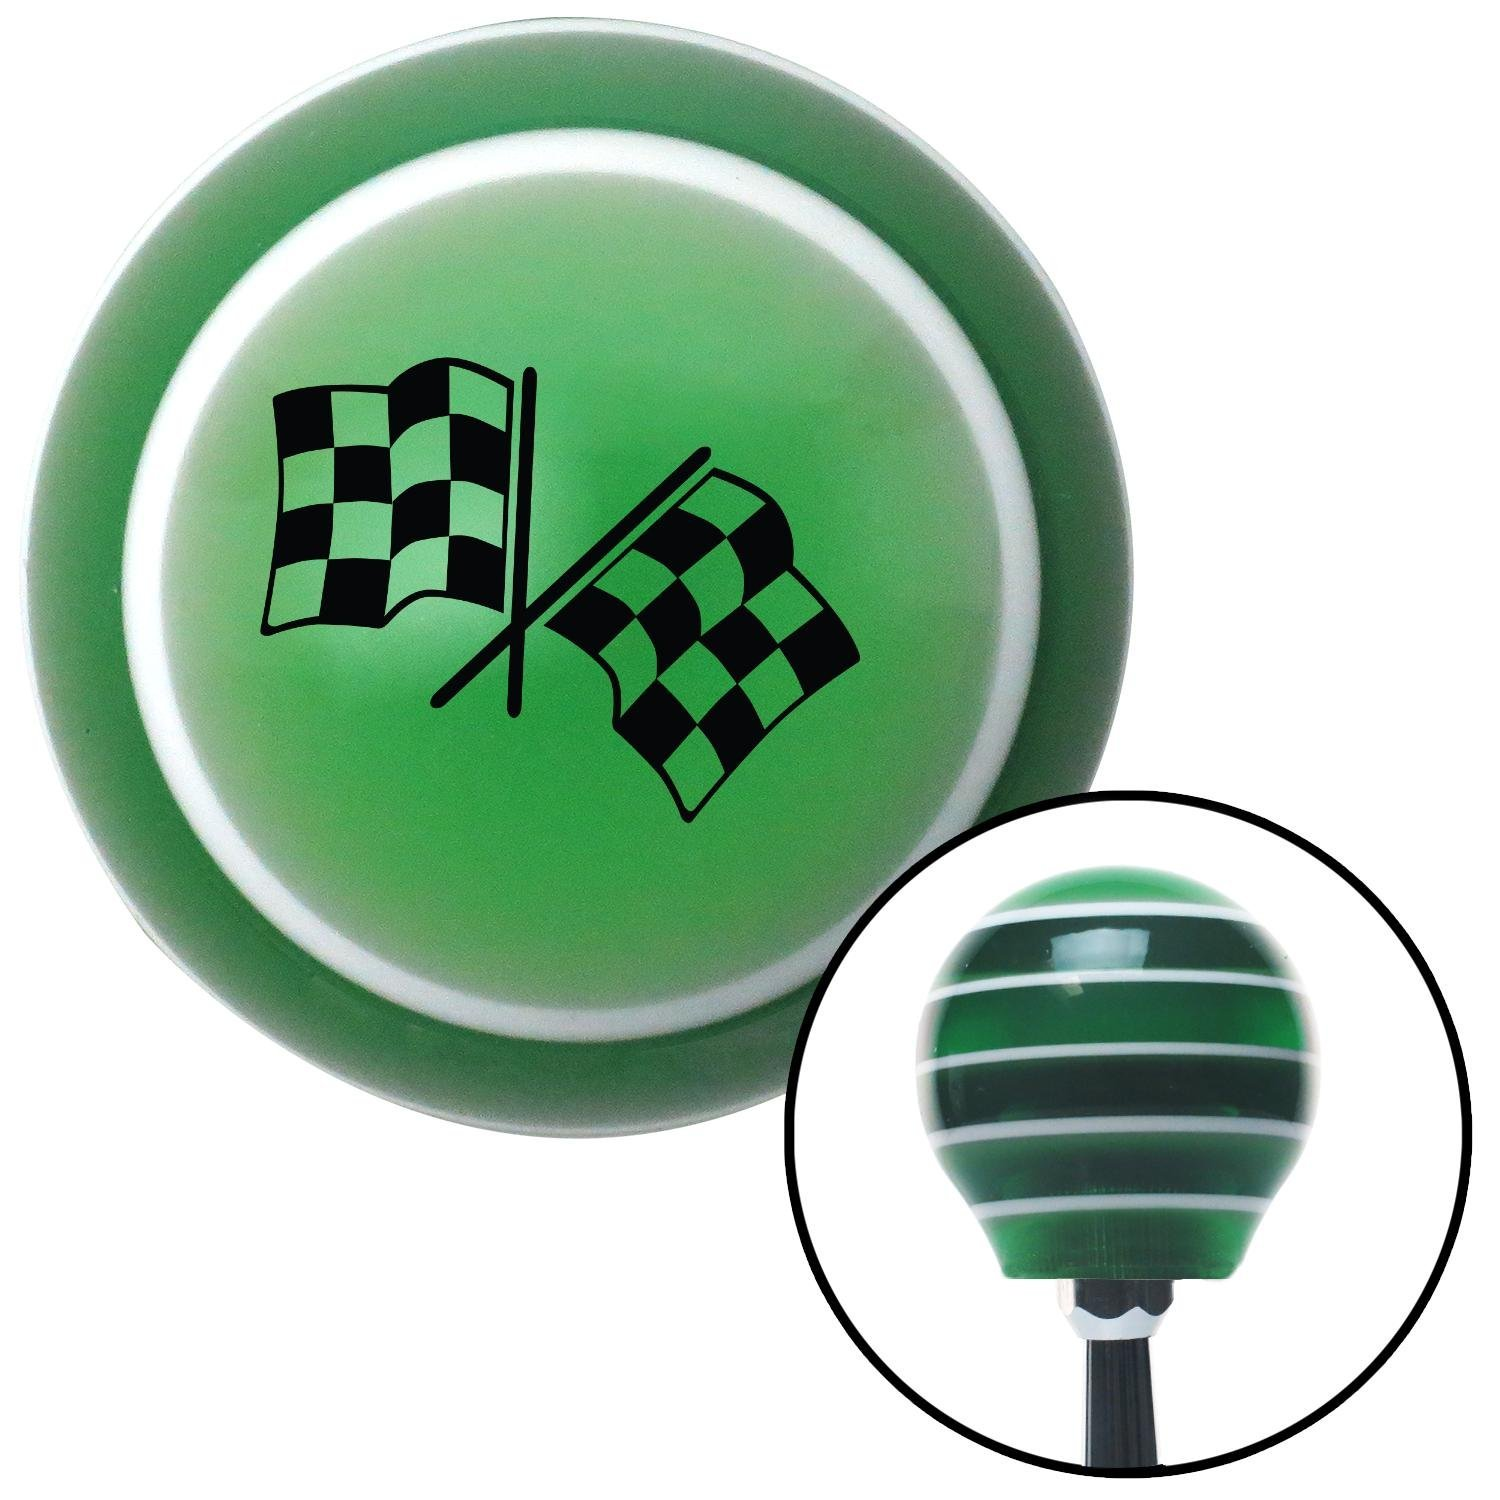 American Shifter 121482 Green Stripe Shift Knob with M16 x 1.5 Insert Black Dual Checkered Flags